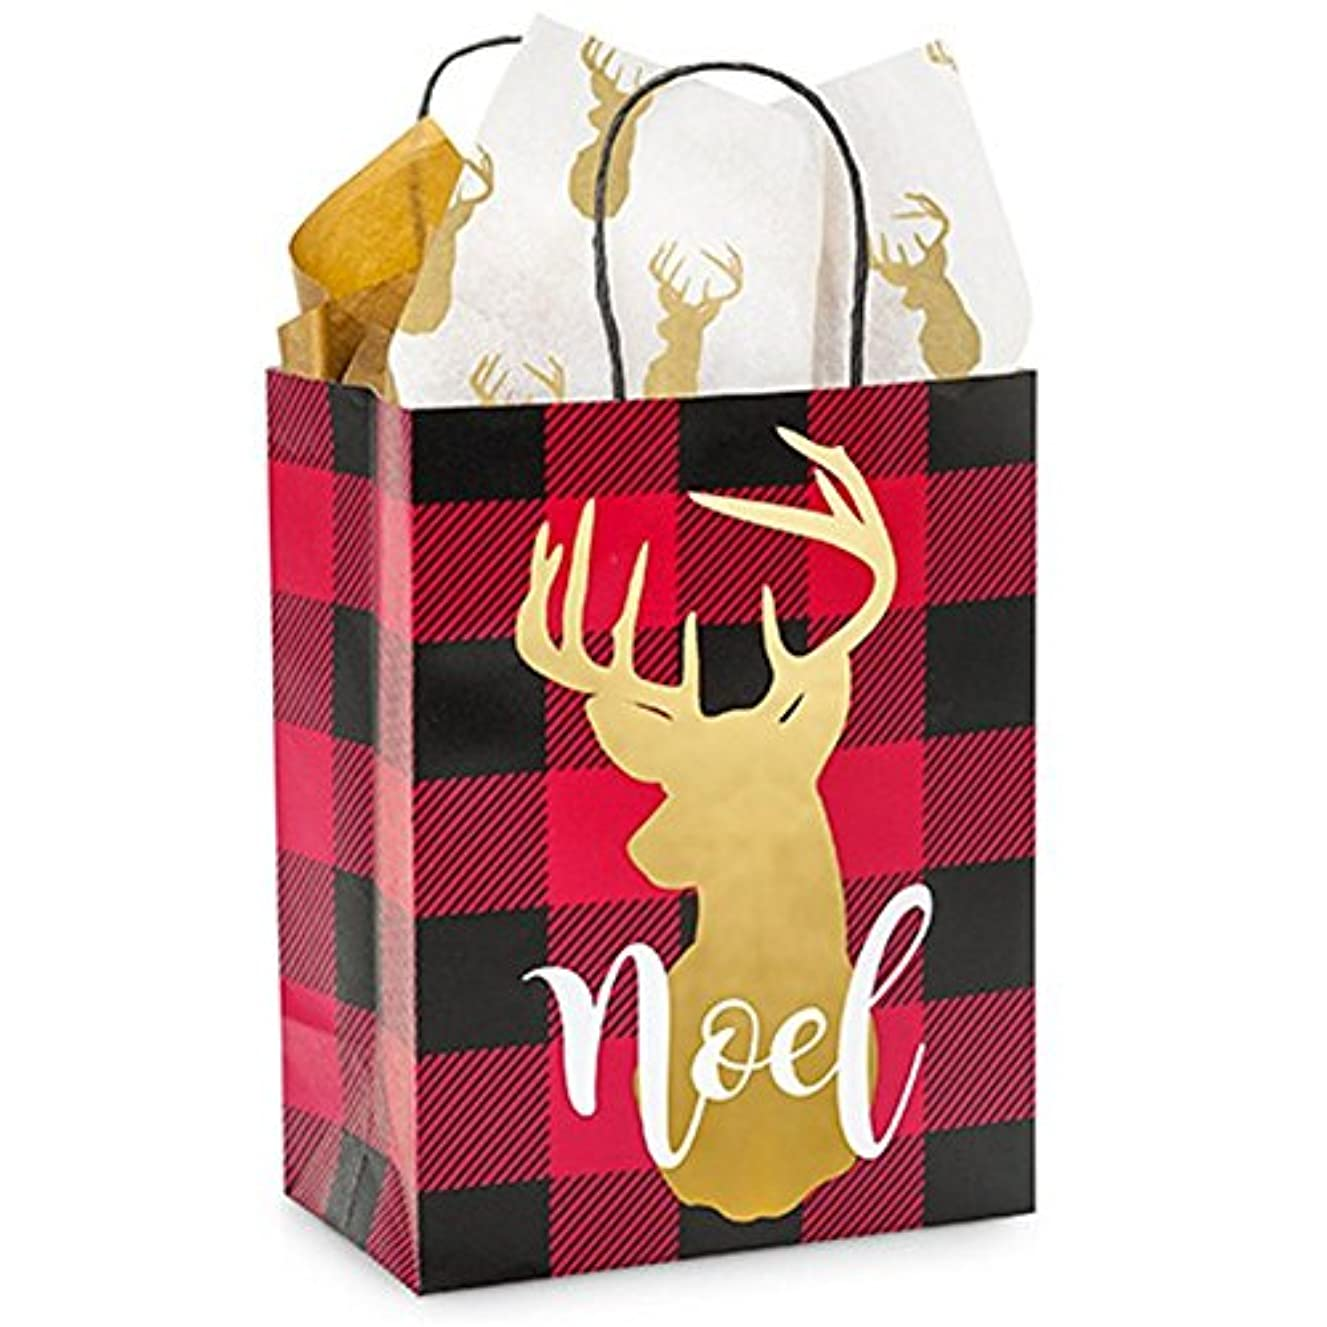 NW Buffalo Plaid Christmas Paper Shopping Bags - Cub Size - 8.25in. X 4.75in. X 10.5in. - 25 Pieces